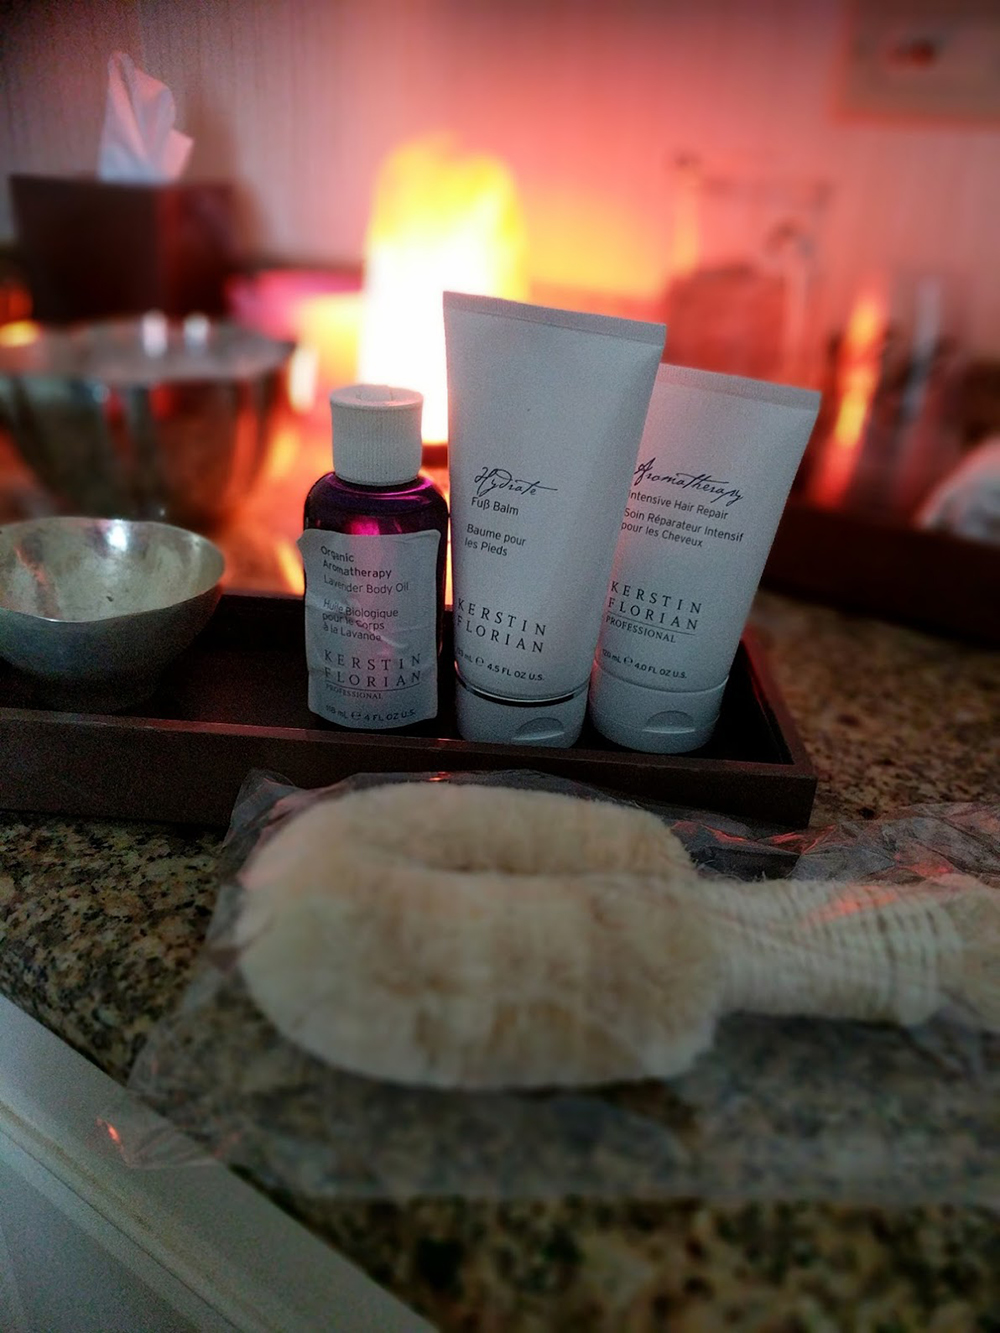 Professional products from Kerstin Florian used during the Spa's Lavender Dreams body treatment.